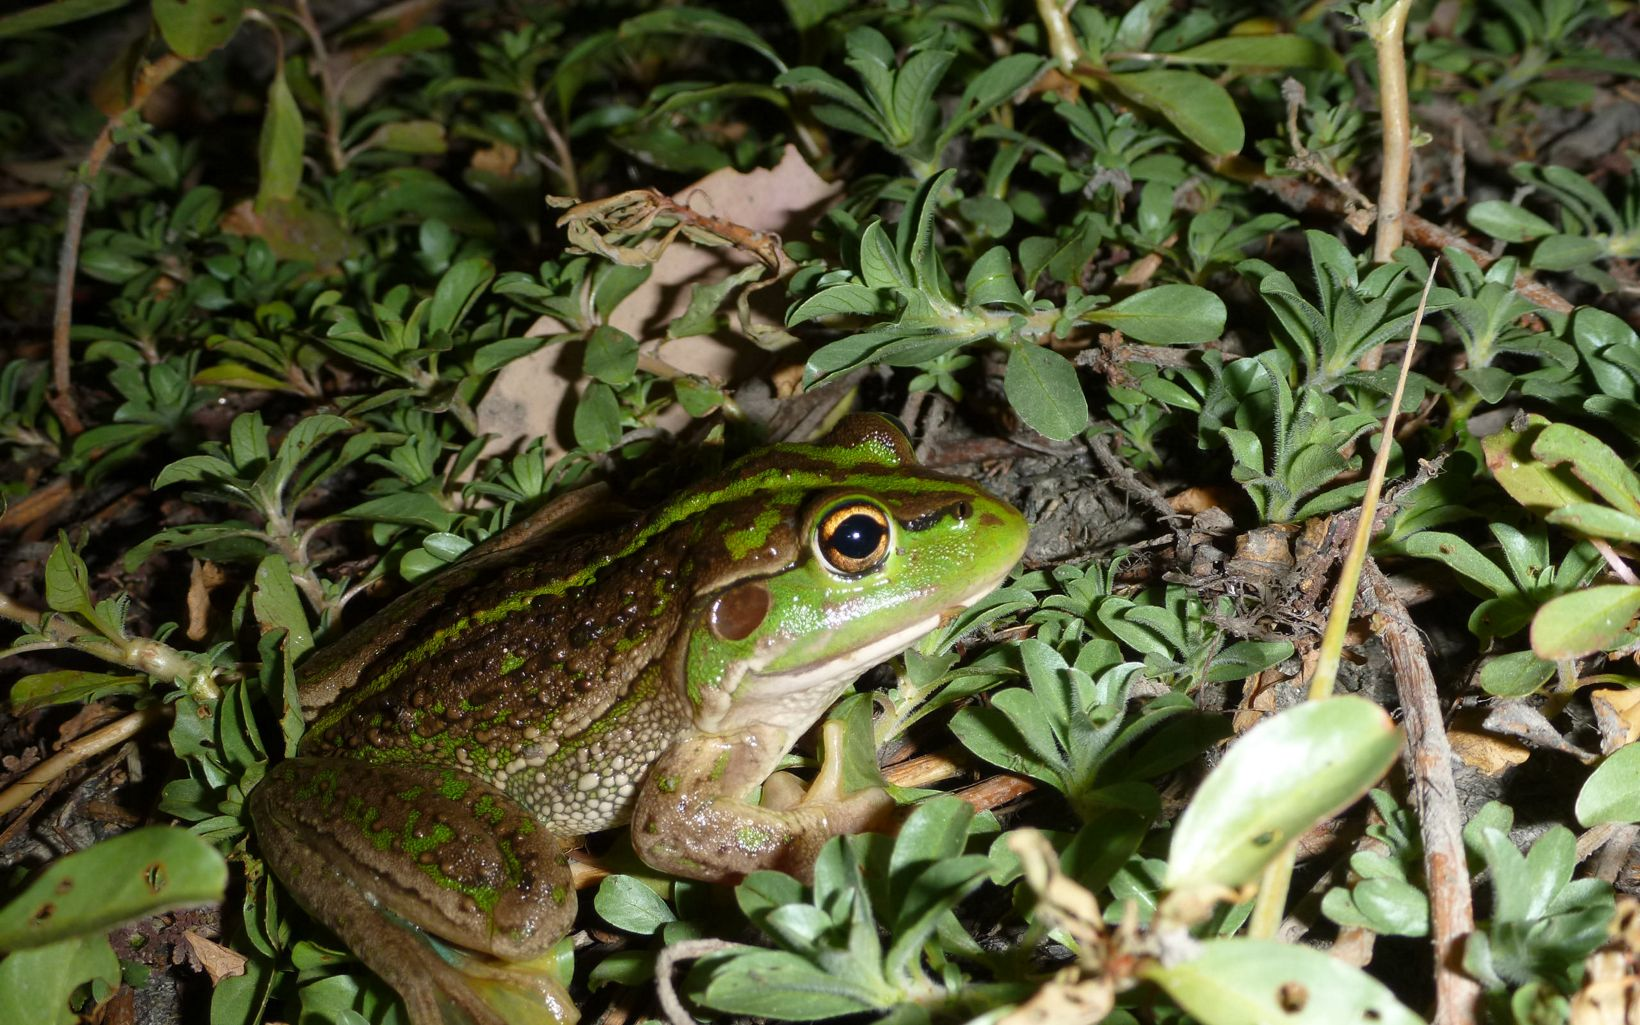 is one of the largest frog species in Australia.